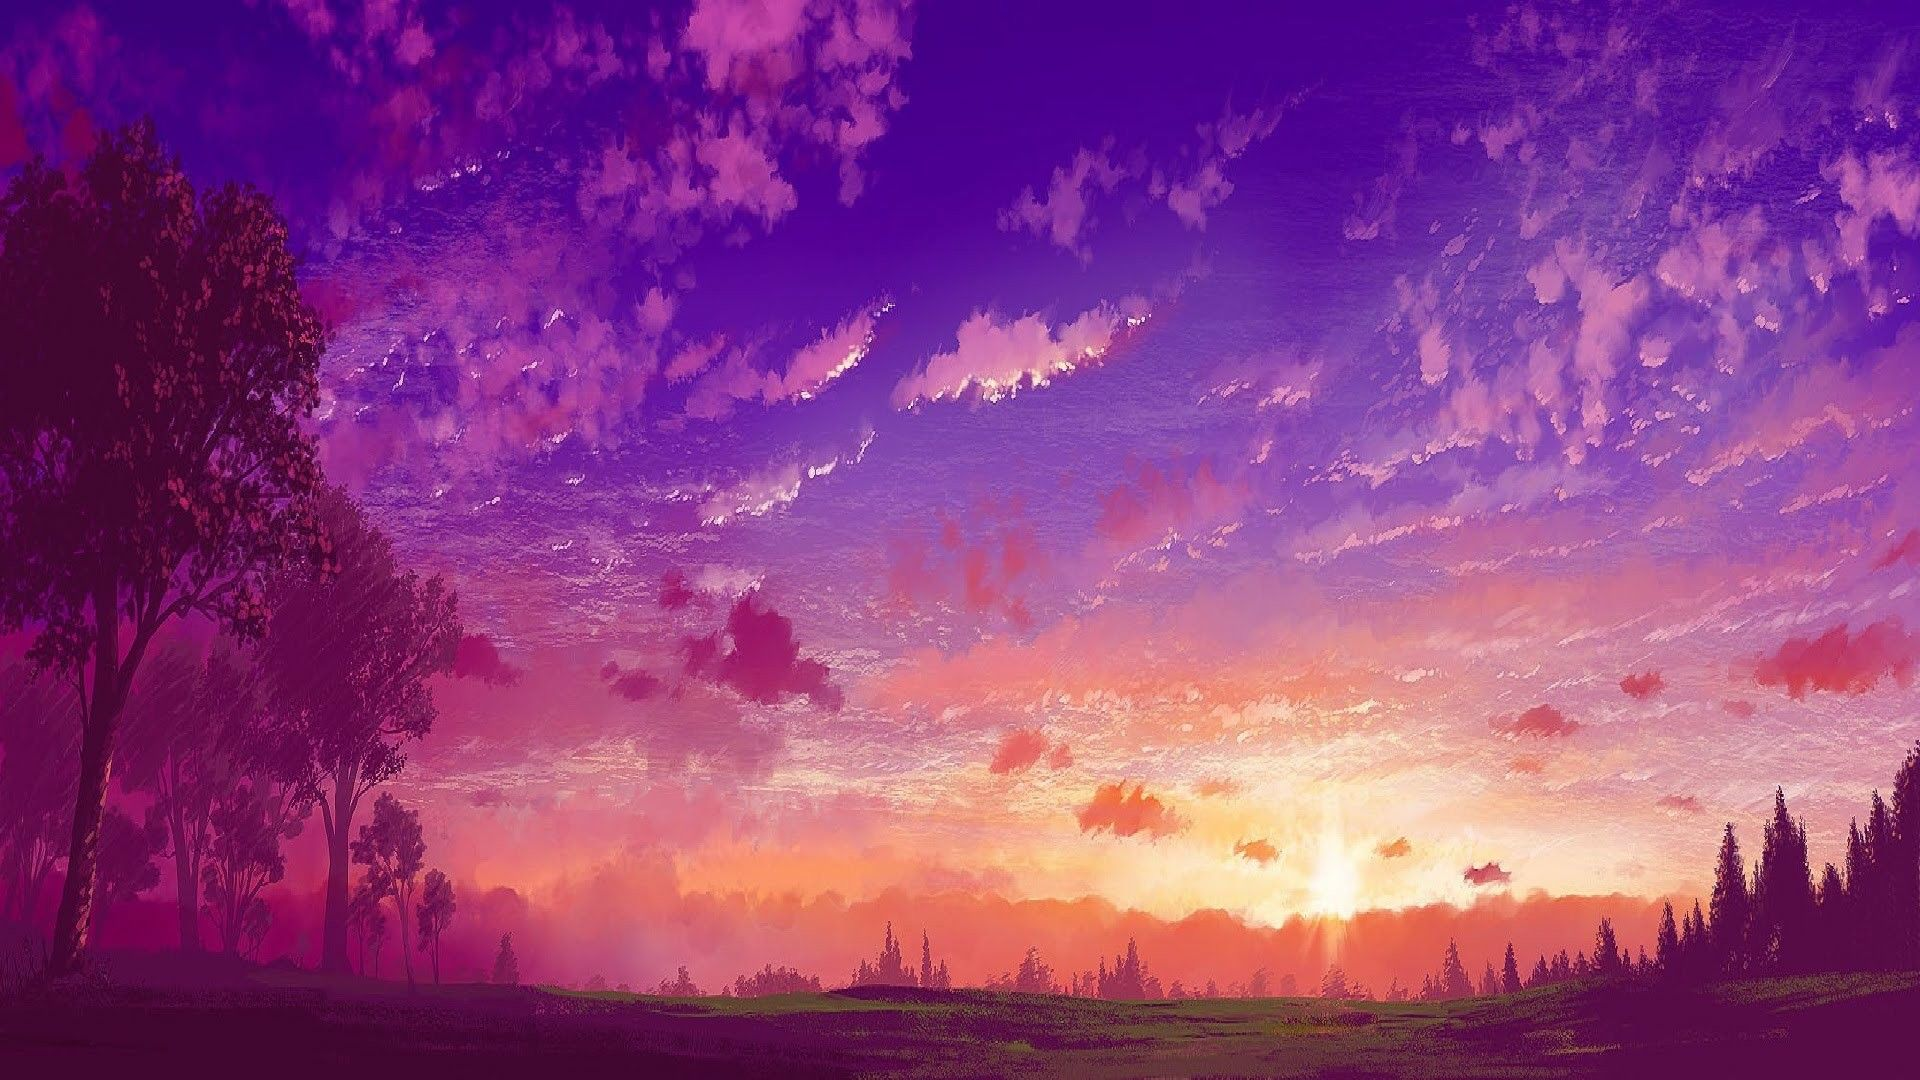 Anime Landscape Anime Purple Sunset Pejzazhi